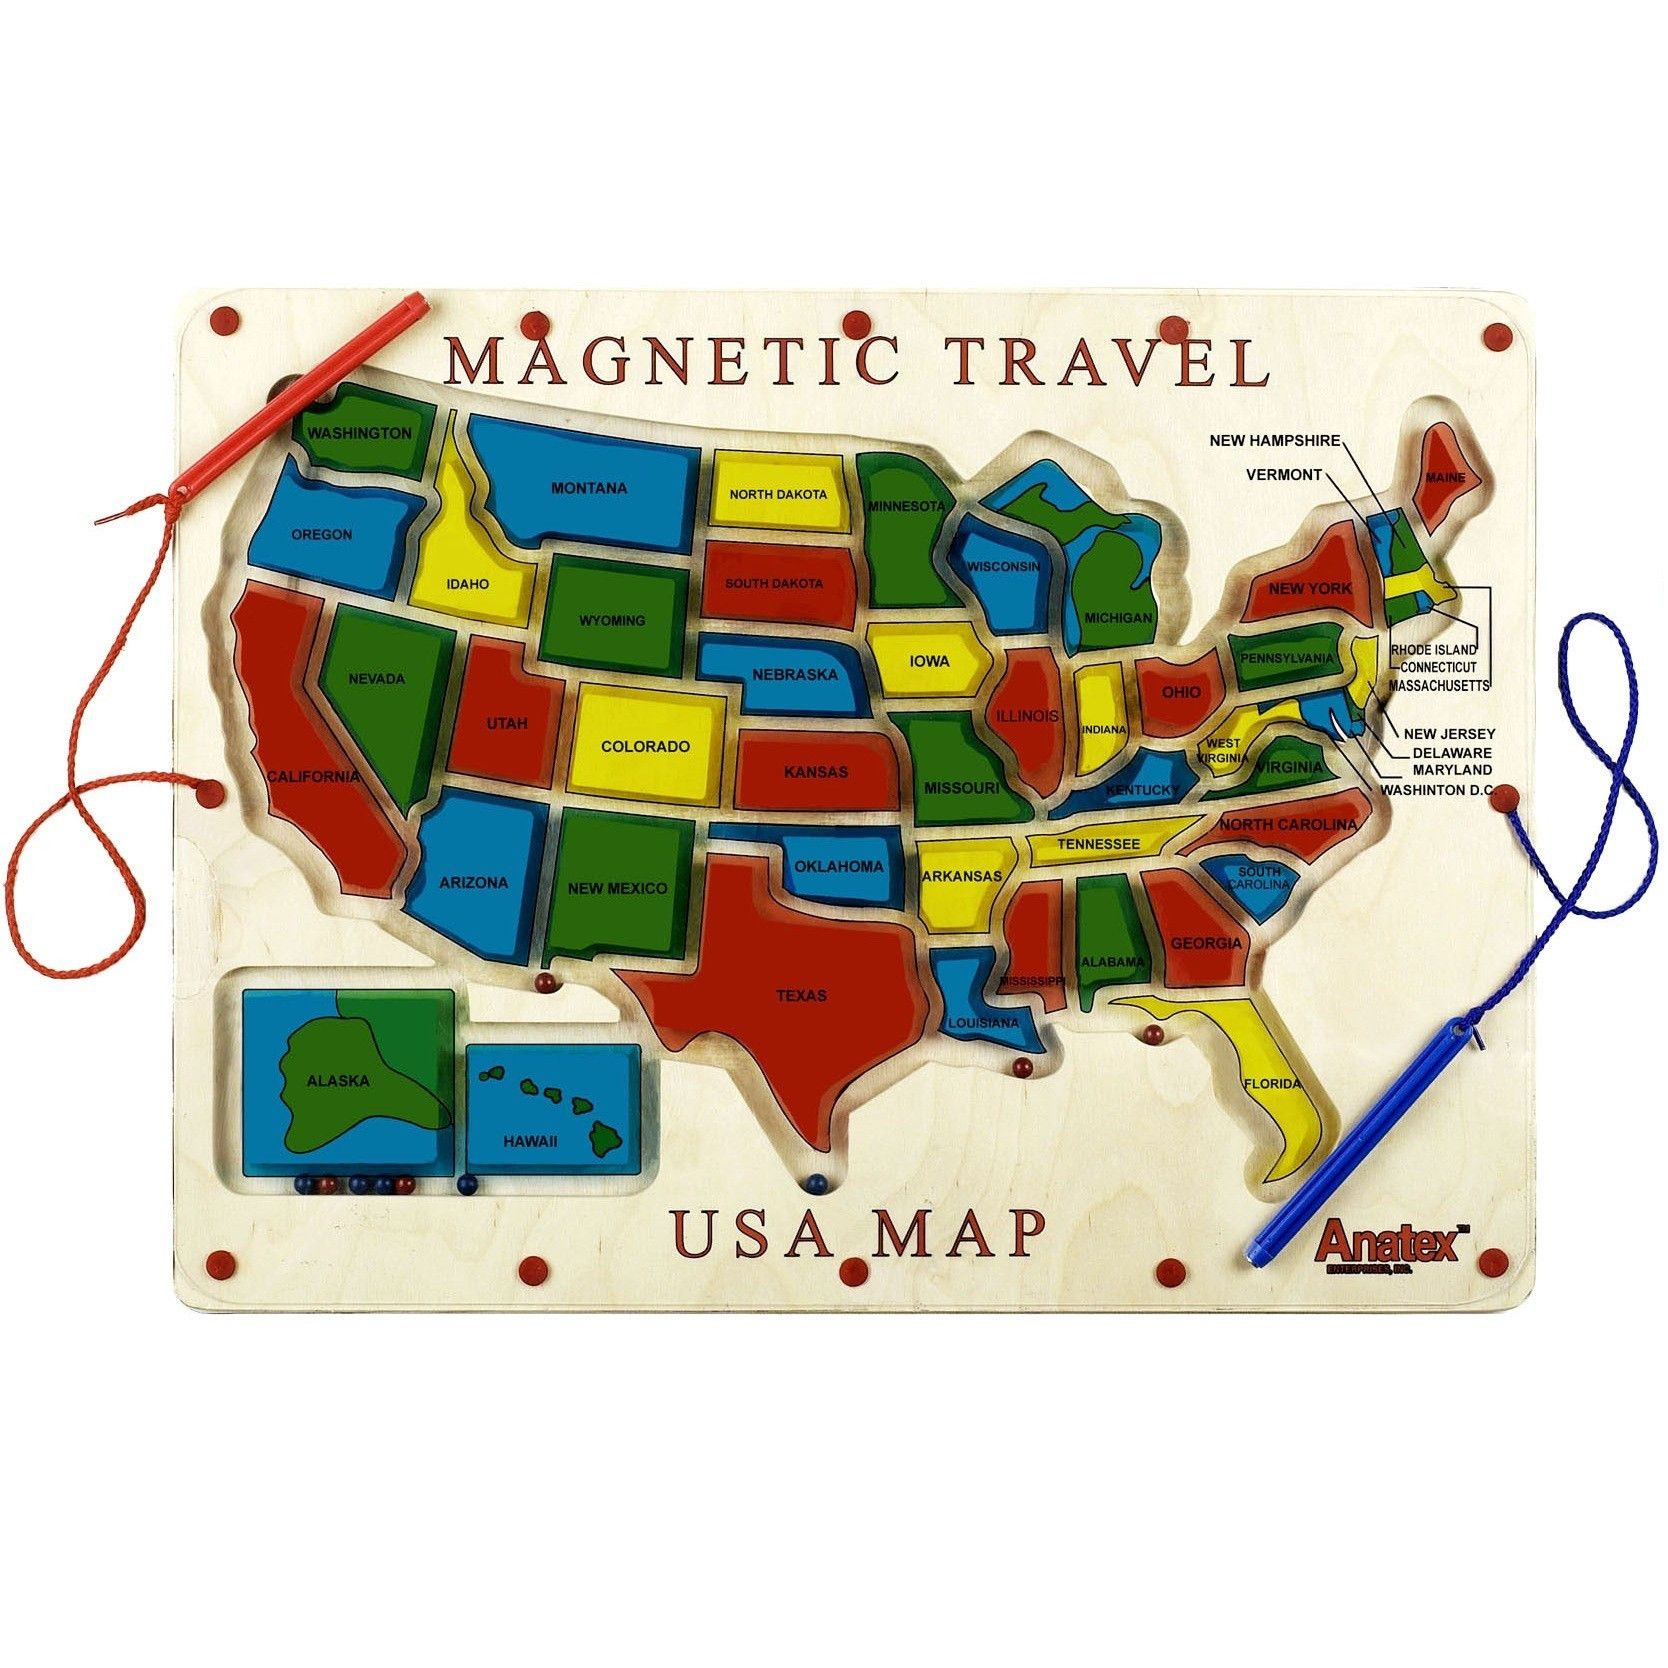 Best Image Of Diagram Us Map Games And Puzzles Millions Ideas - Usa map game states and capitals